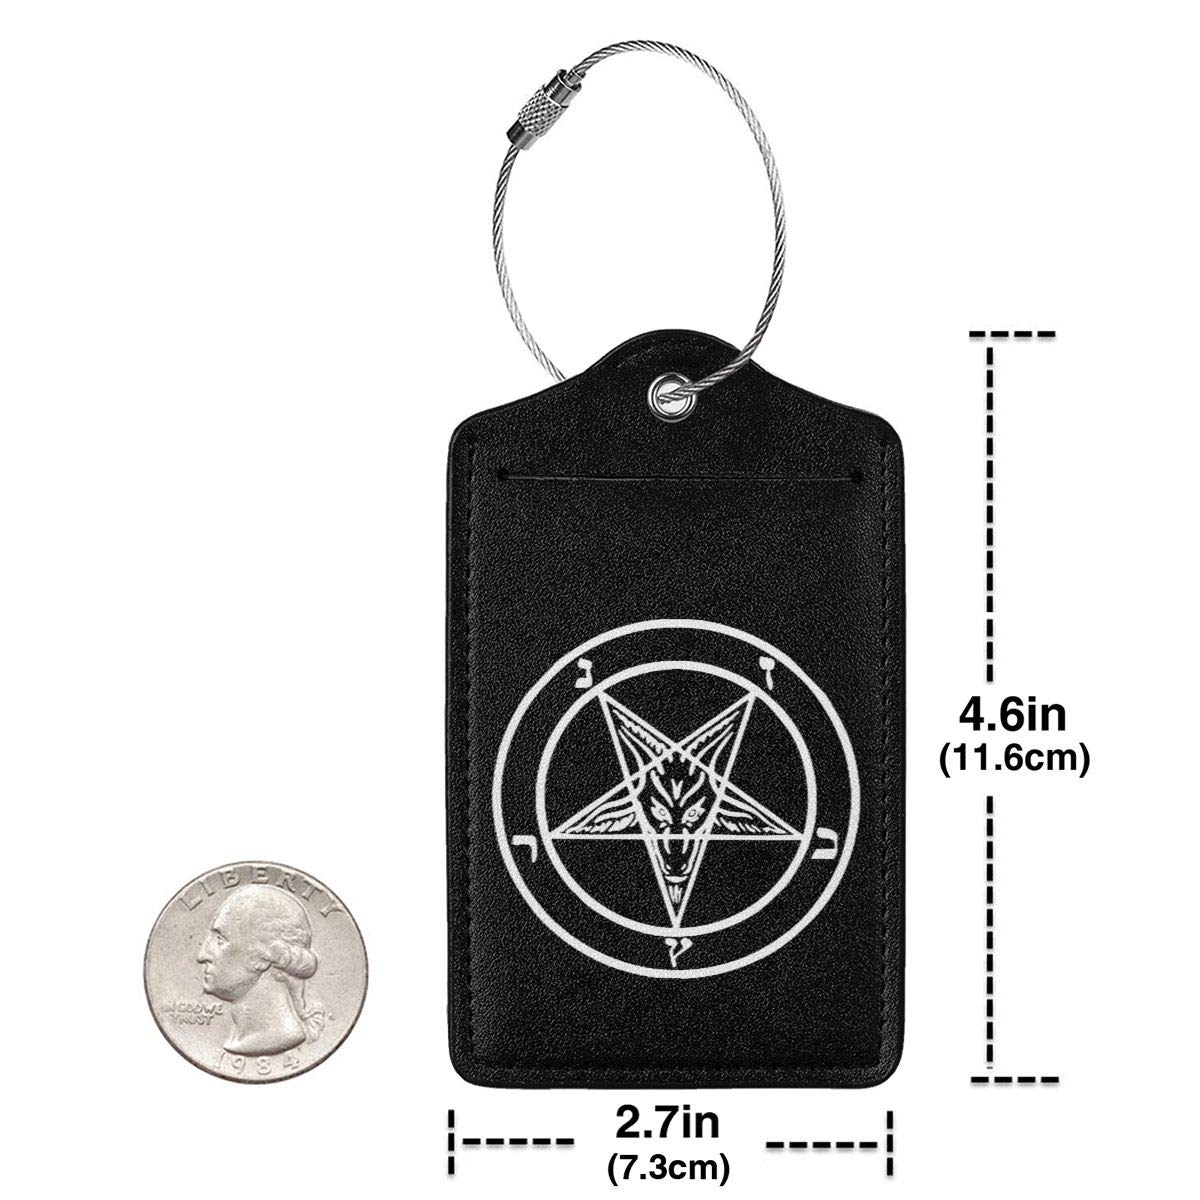 Satan Symbol Leather Luggage Tags Suitcase Tag Travel Bag Labels With Privacy Cover For Men Women 2 Pack 4 Pack